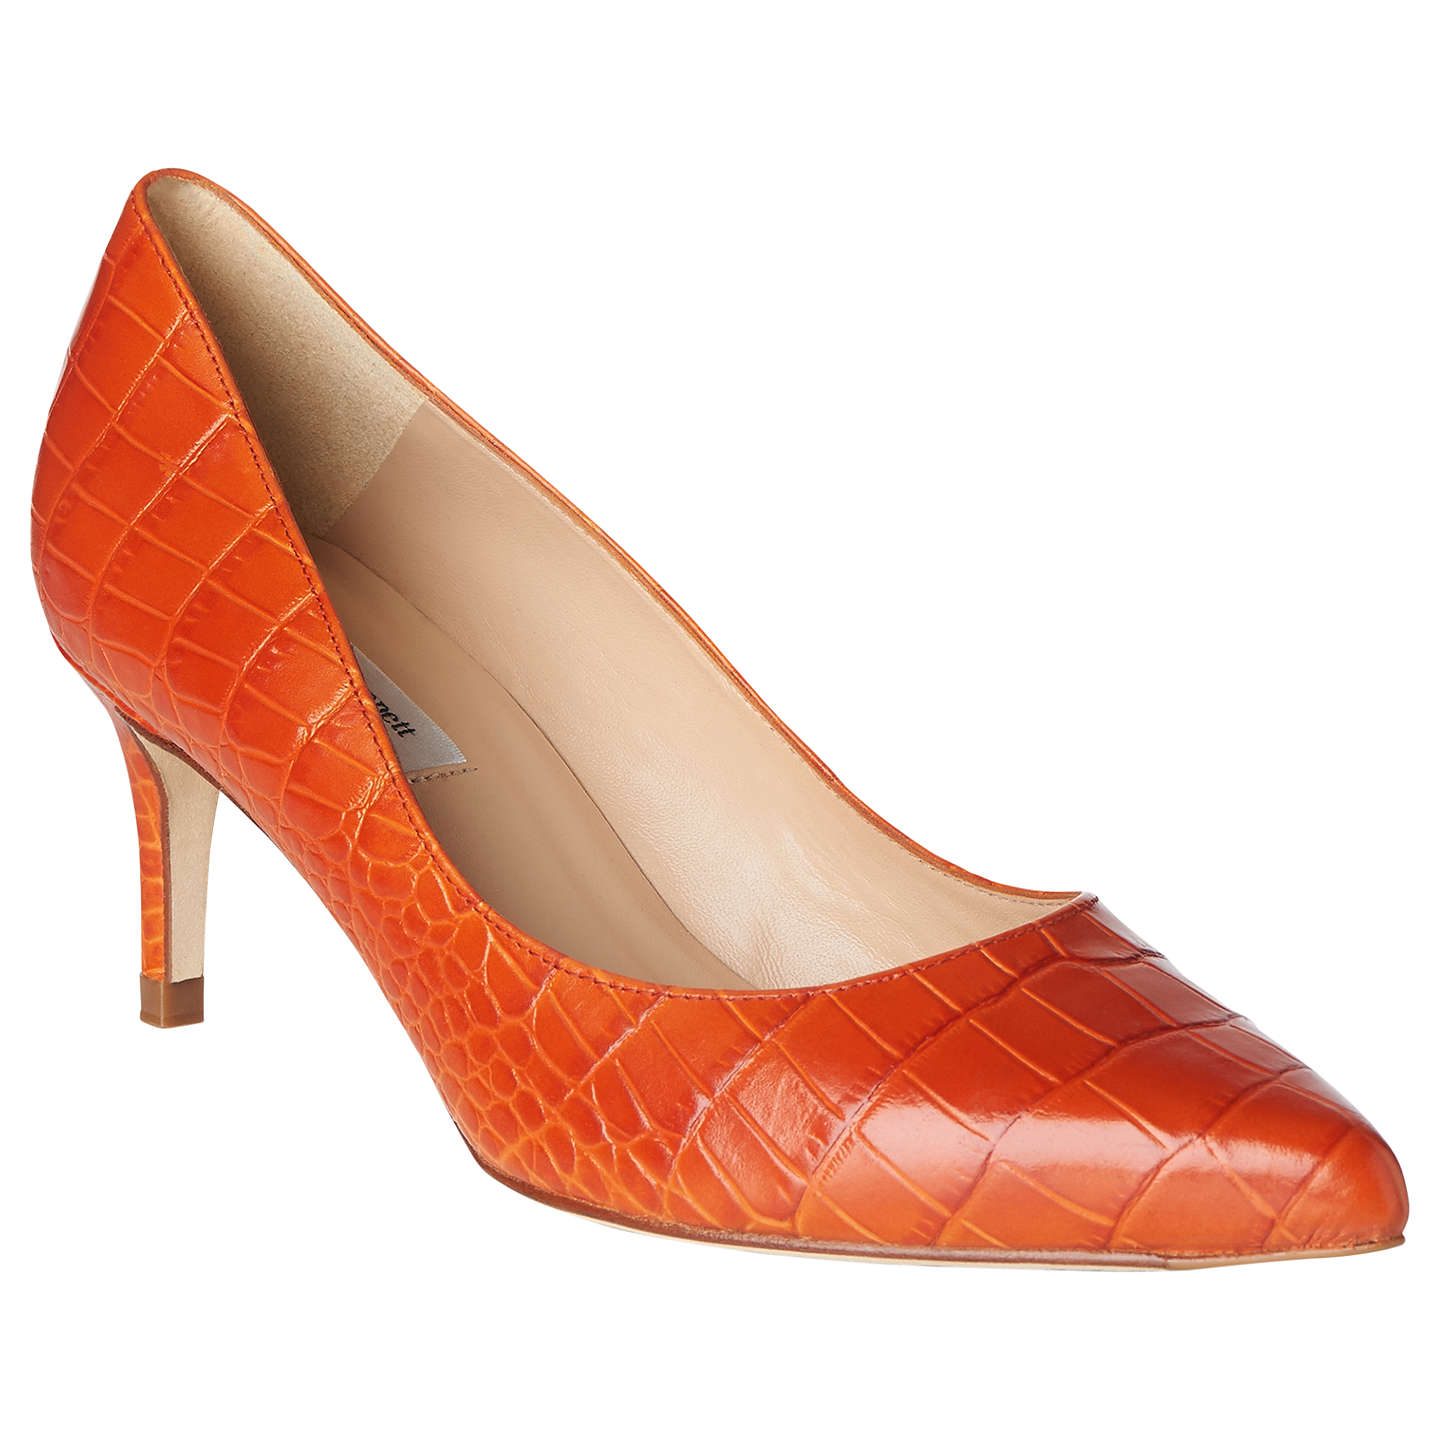 L.K. Bennett Elma Court Shoes Wiki Cheap Price Release Dates Cheap Price Limited Edition Sale Online With Credit Card Cheap Online ljFhBNdb6Y